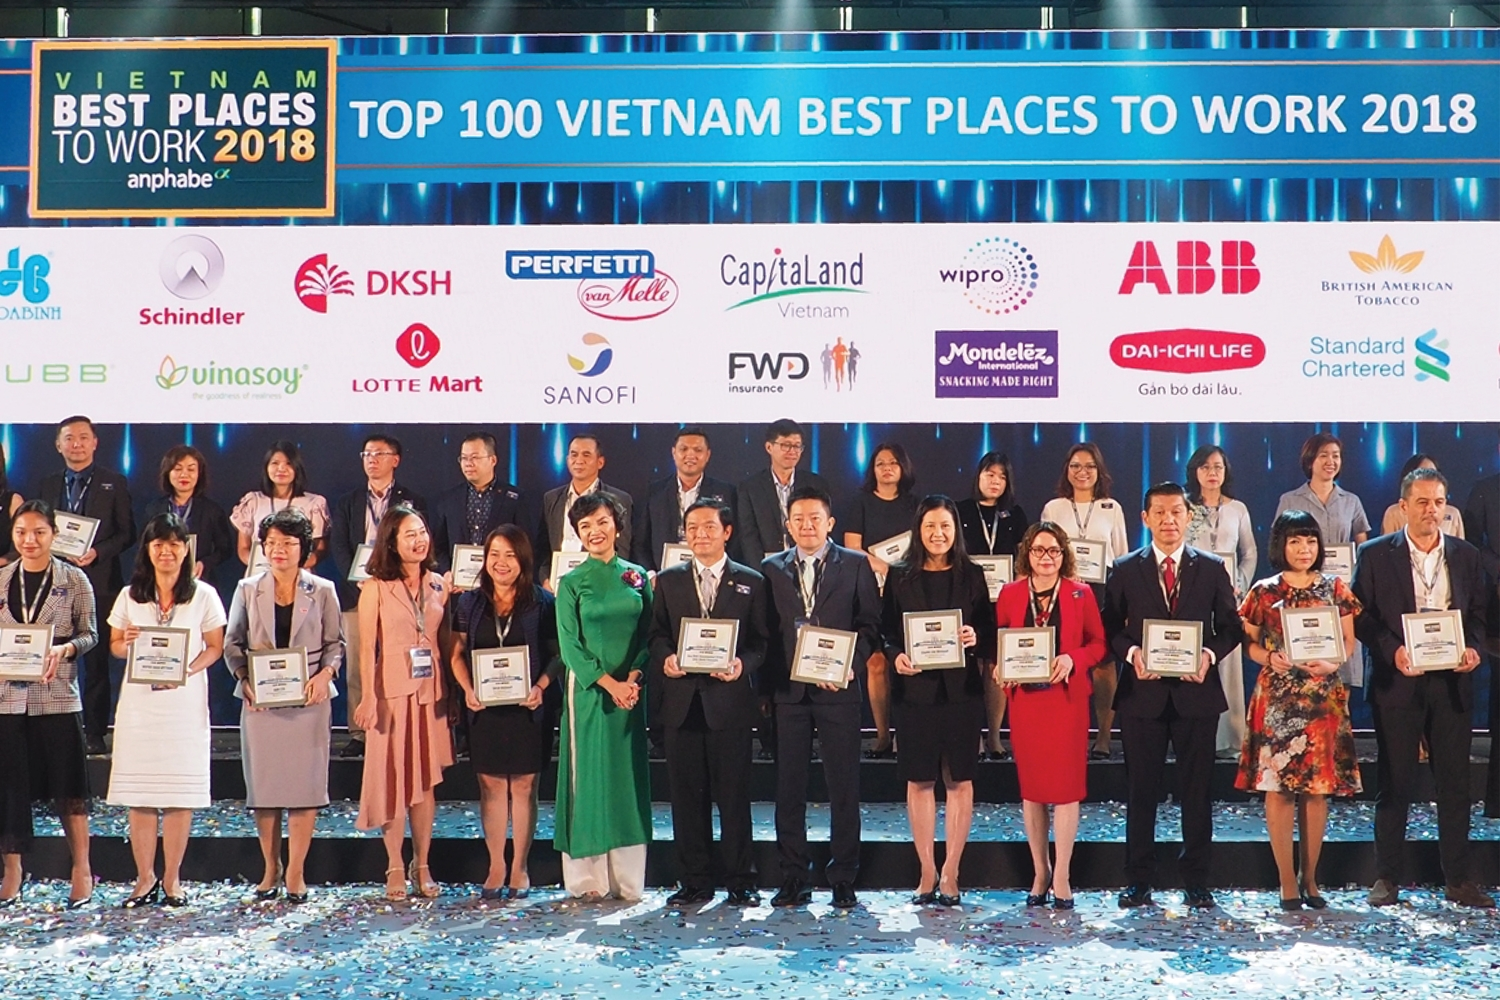 DKSH awarded as one of the best places to work in Vietnam